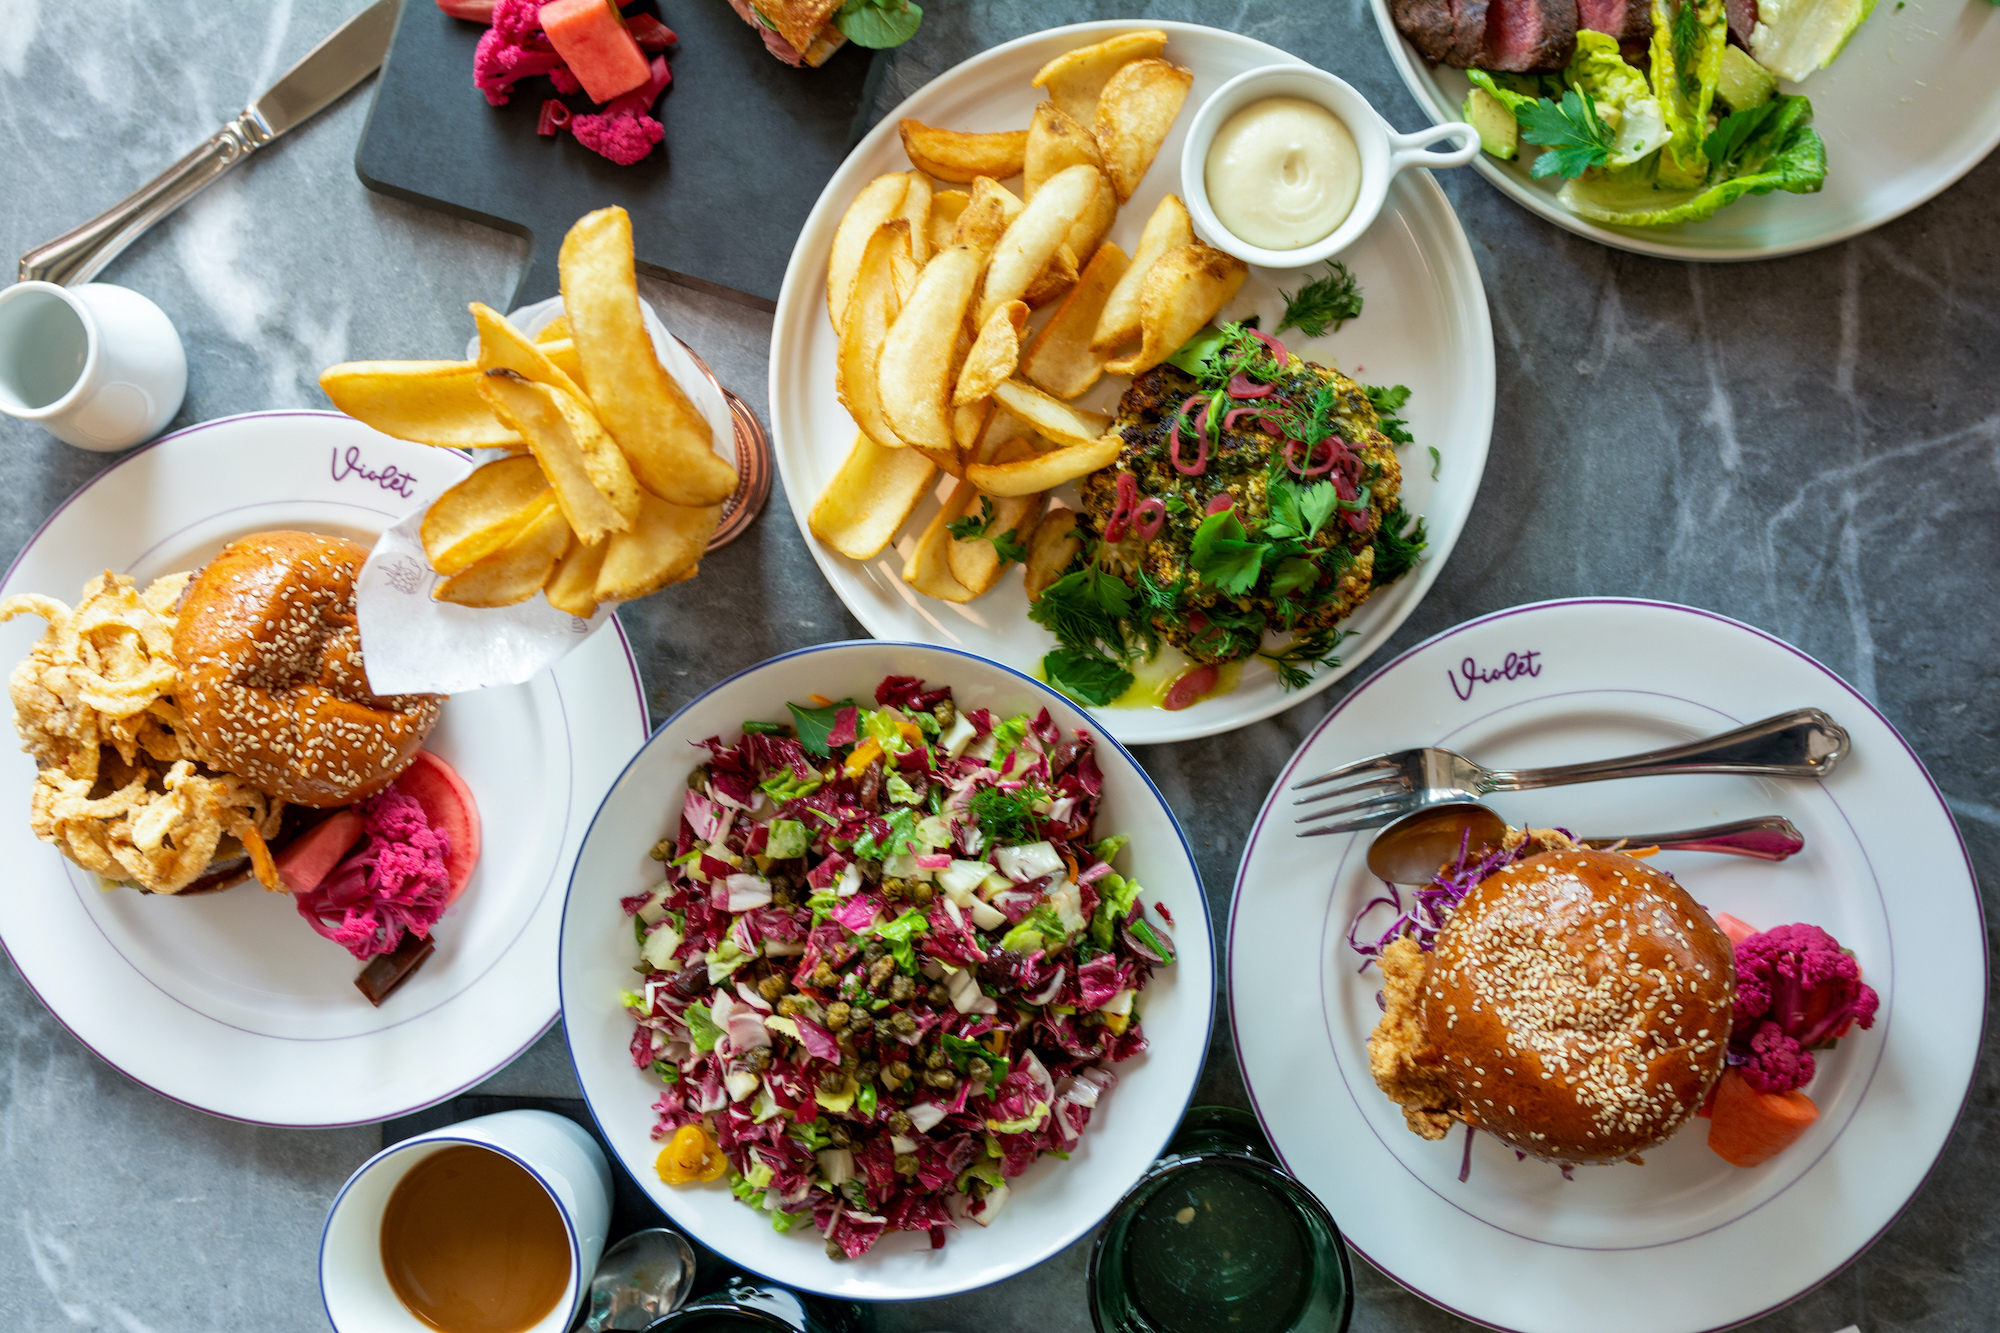 A plate of California French food on a sunny day, with salads and sandwiches.